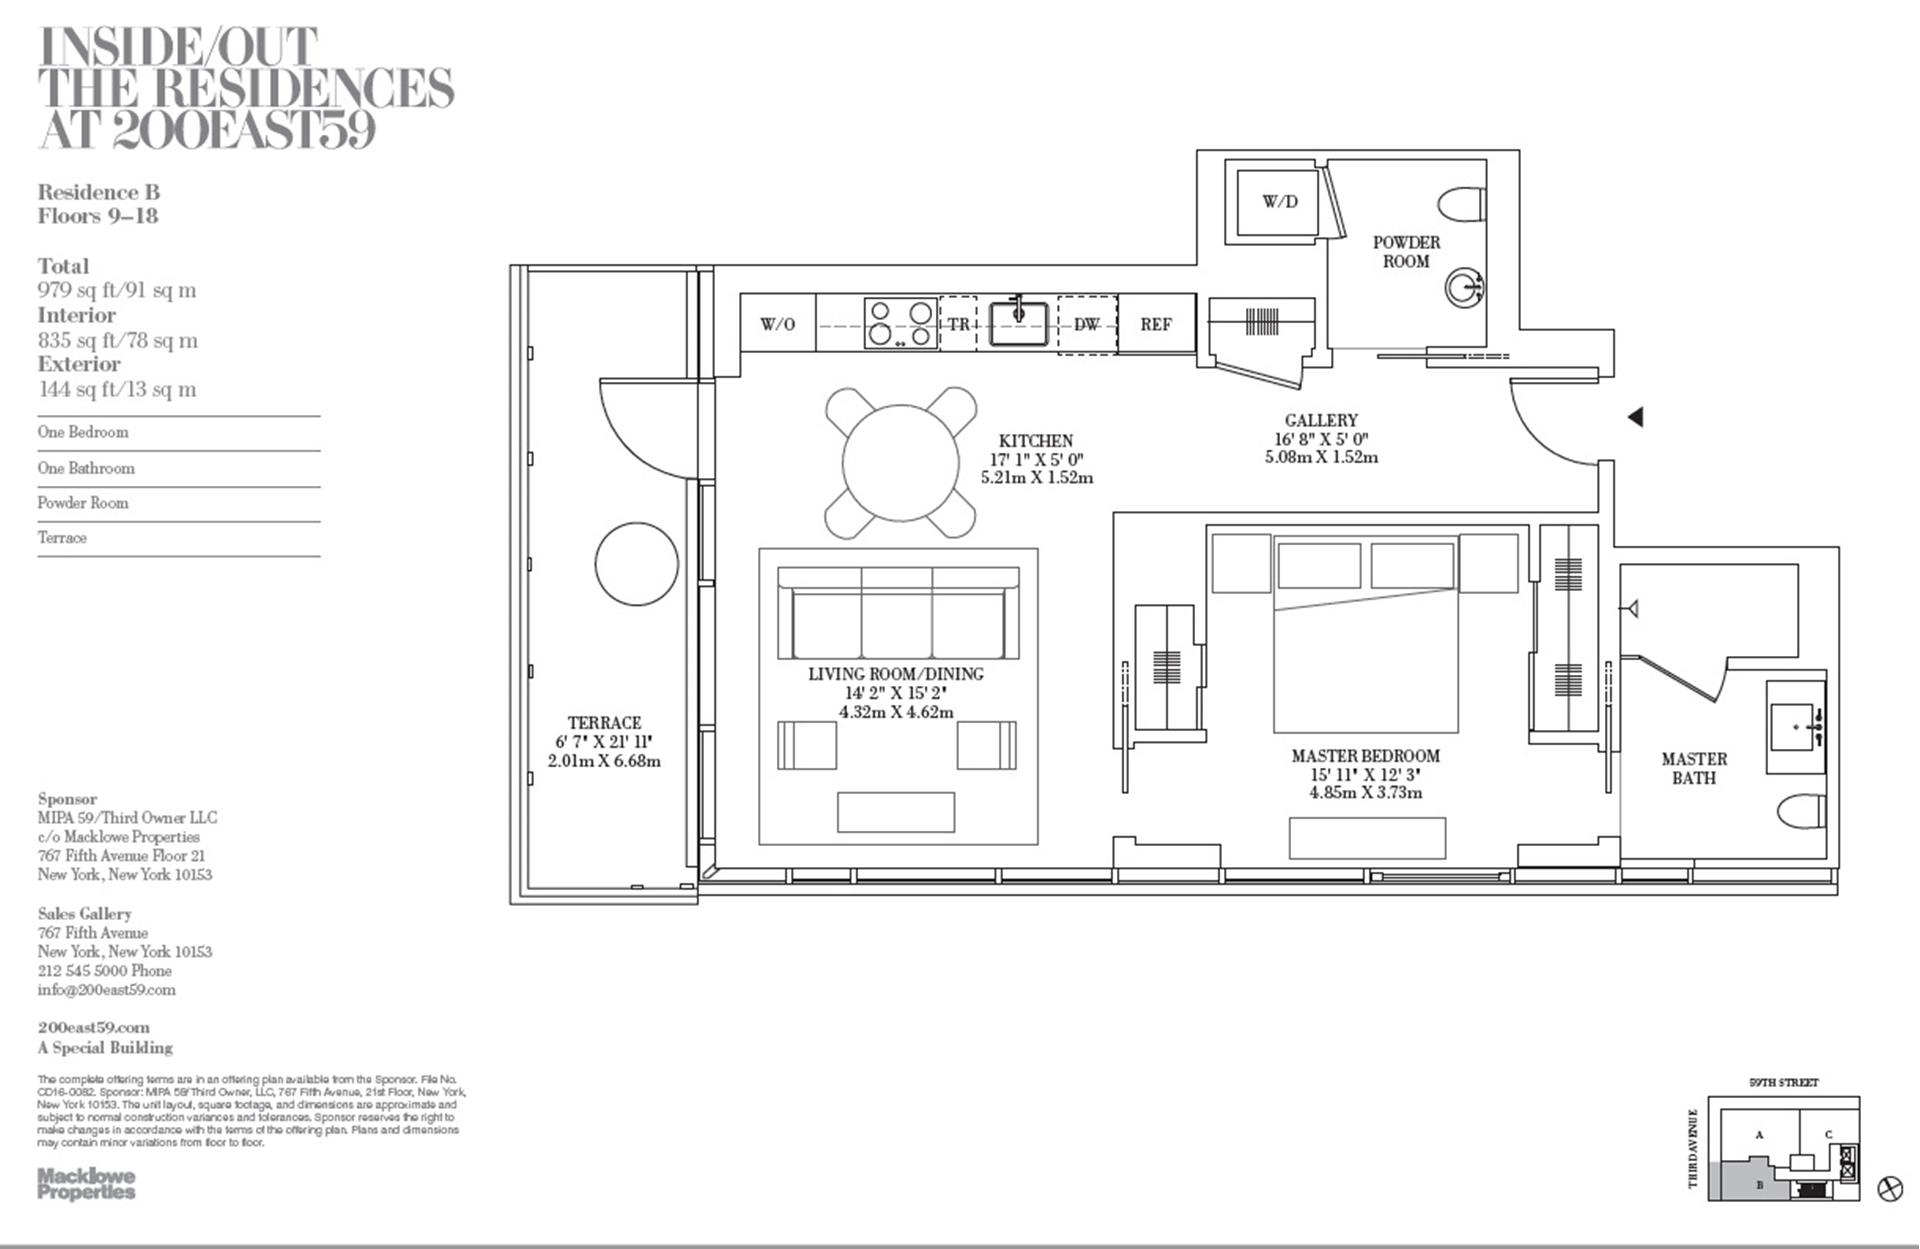 Floor plan of 200 East 59th St, 15B - Midtown, New York